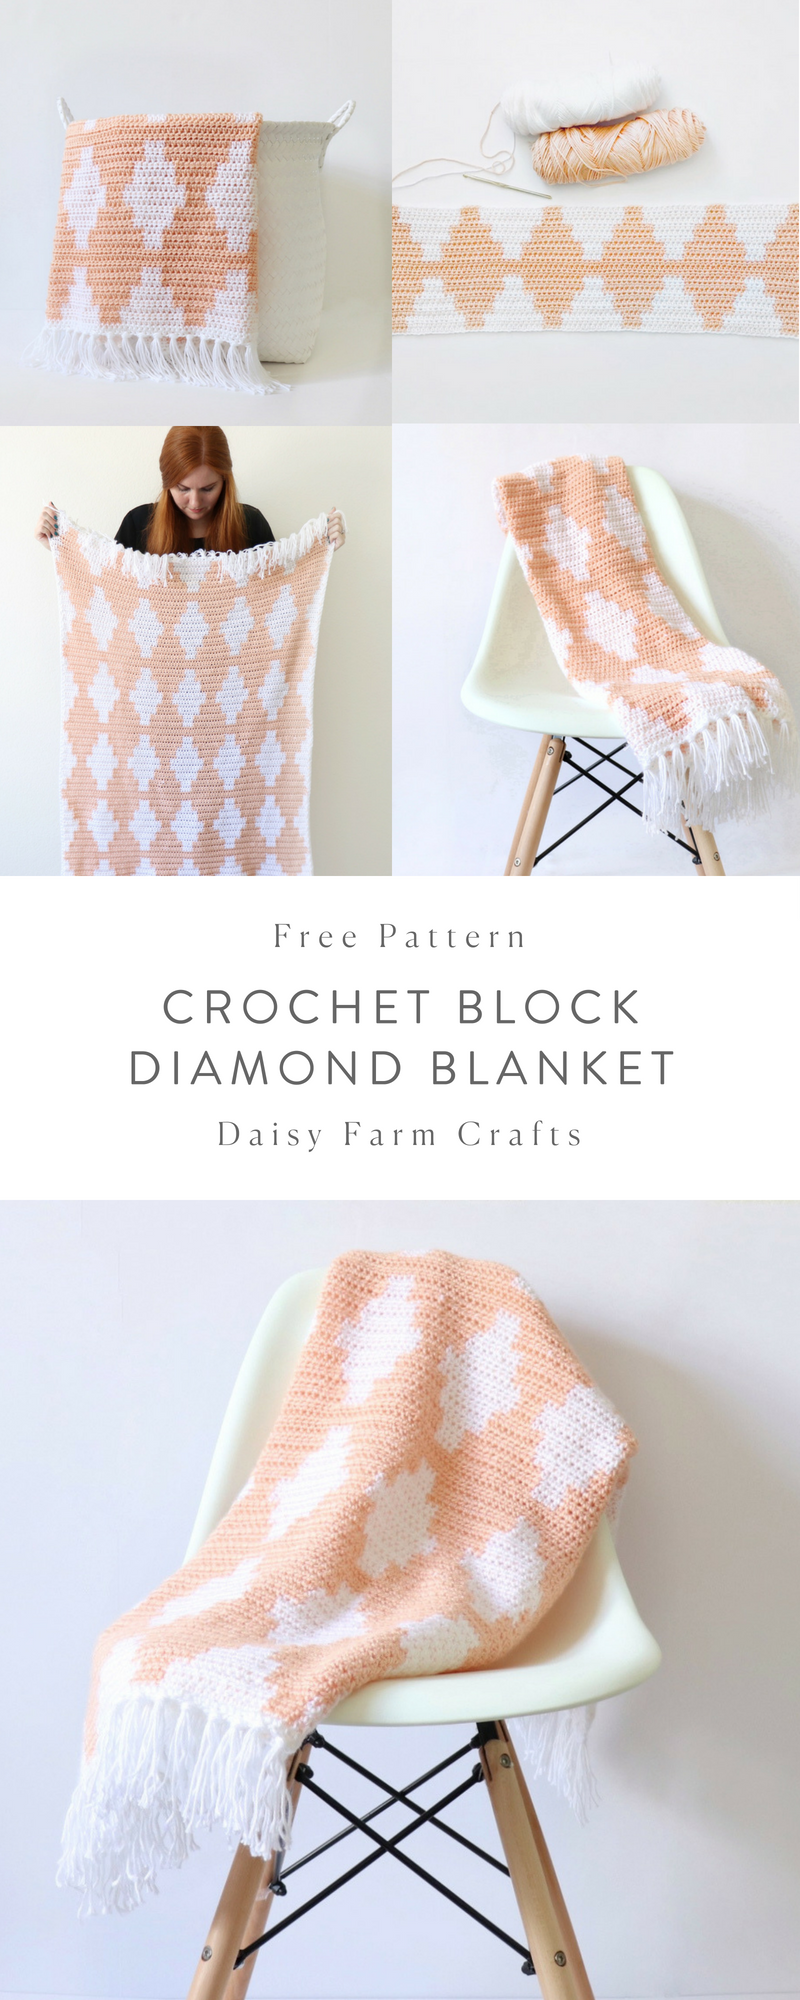 Free Pattern - Crochet Block Diamond Blanket | entretejido ...